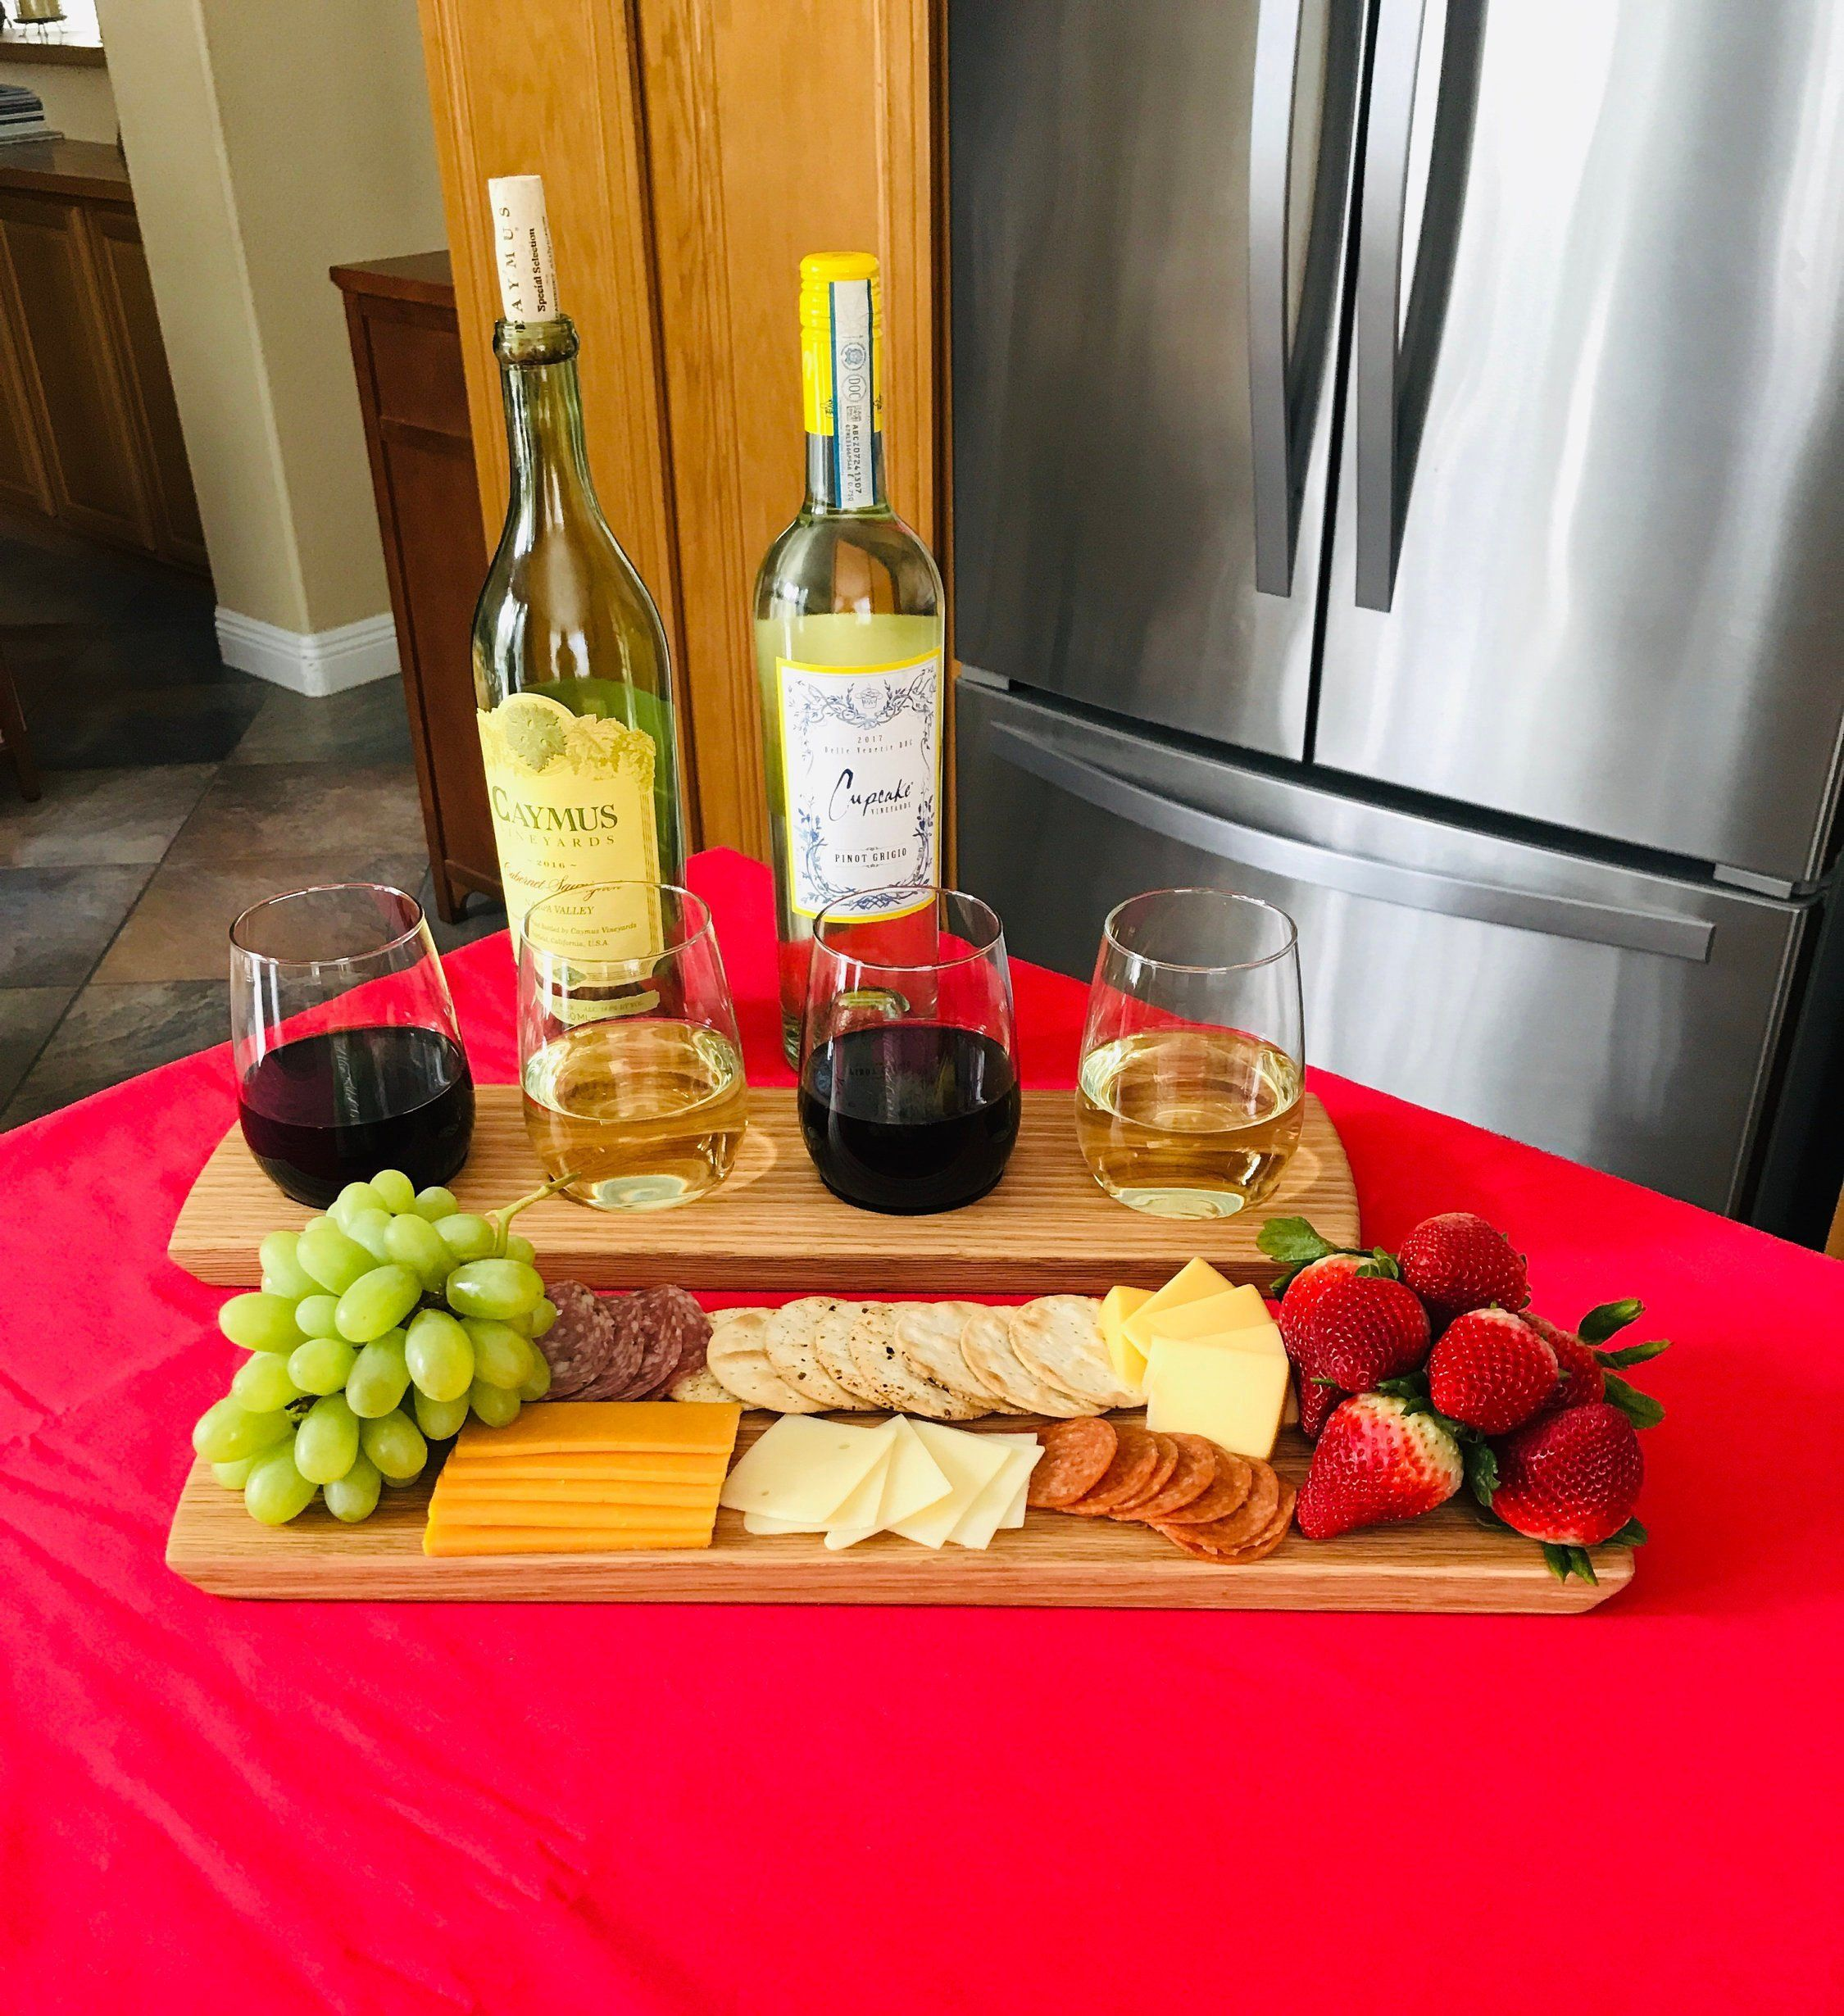 Wine Flight Charcuterie Board Set Solid Oak 4 Stemless Wine Glass Set Serving Tray Wine Tasting Can Be Person Clean Eating Snacks Food Cheese Platters